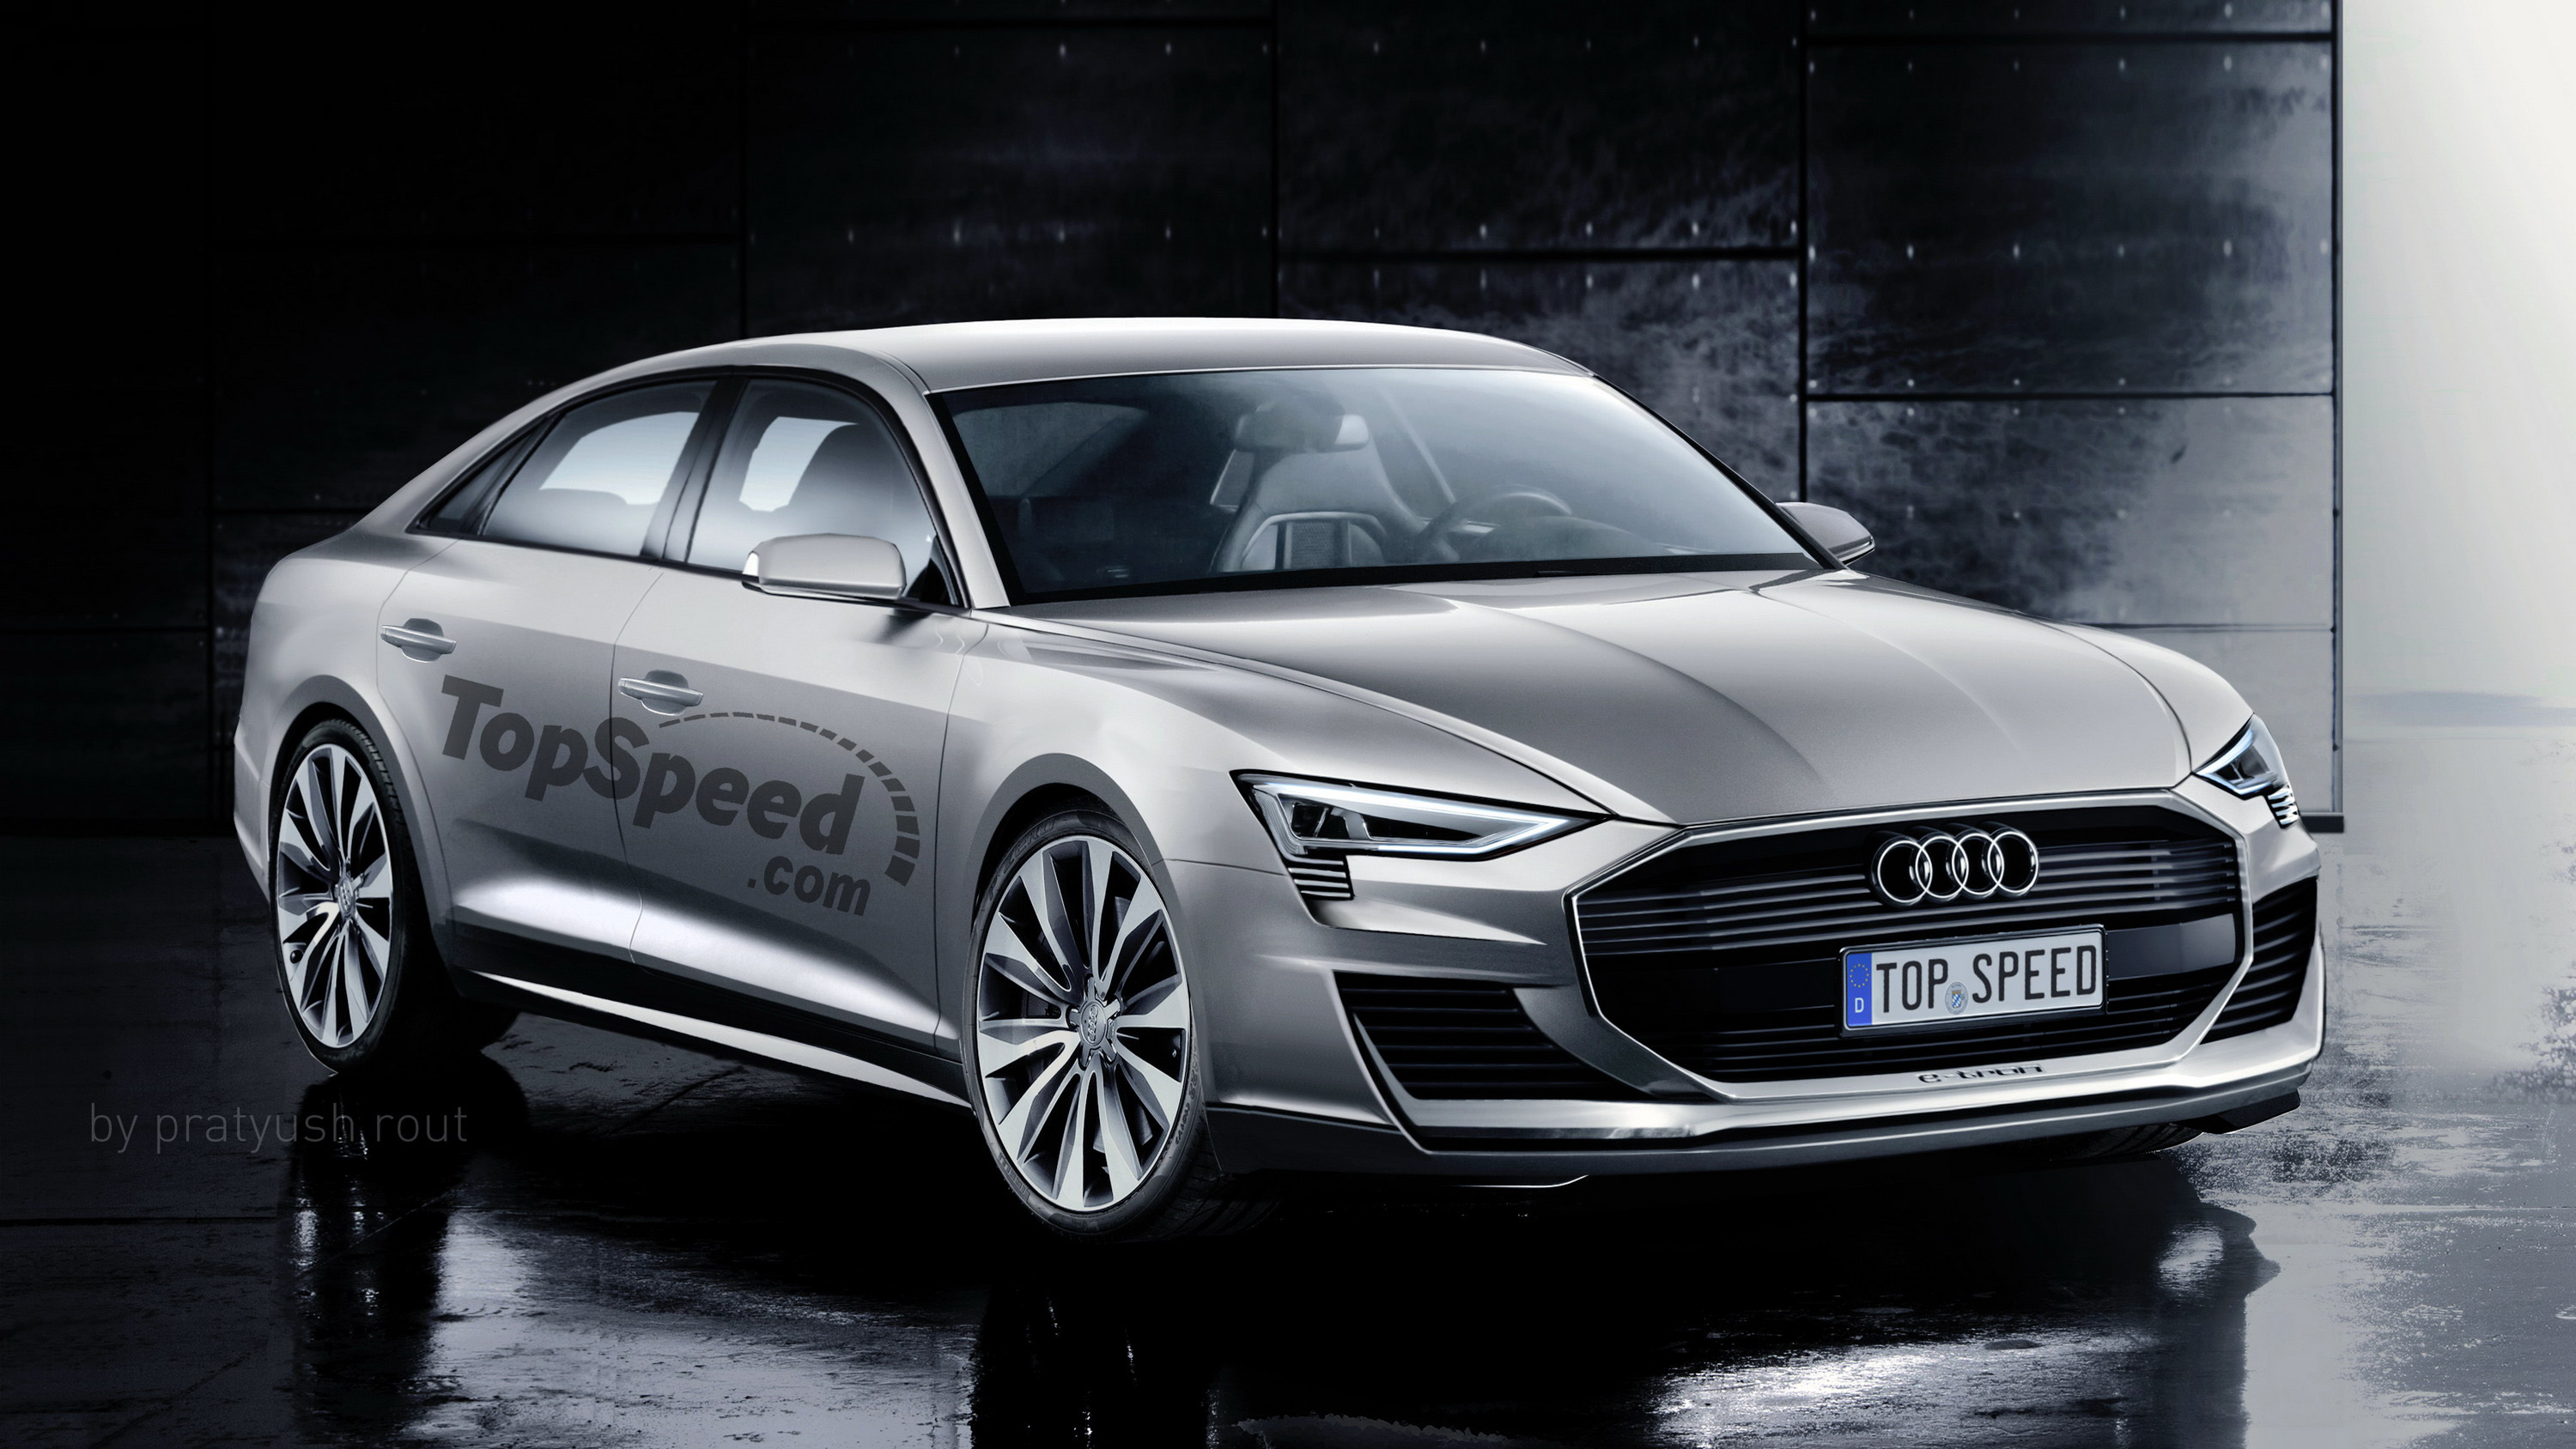 2020 Audi A9 E-tron Pictures, Photos, Wallpapers. | Top Speed